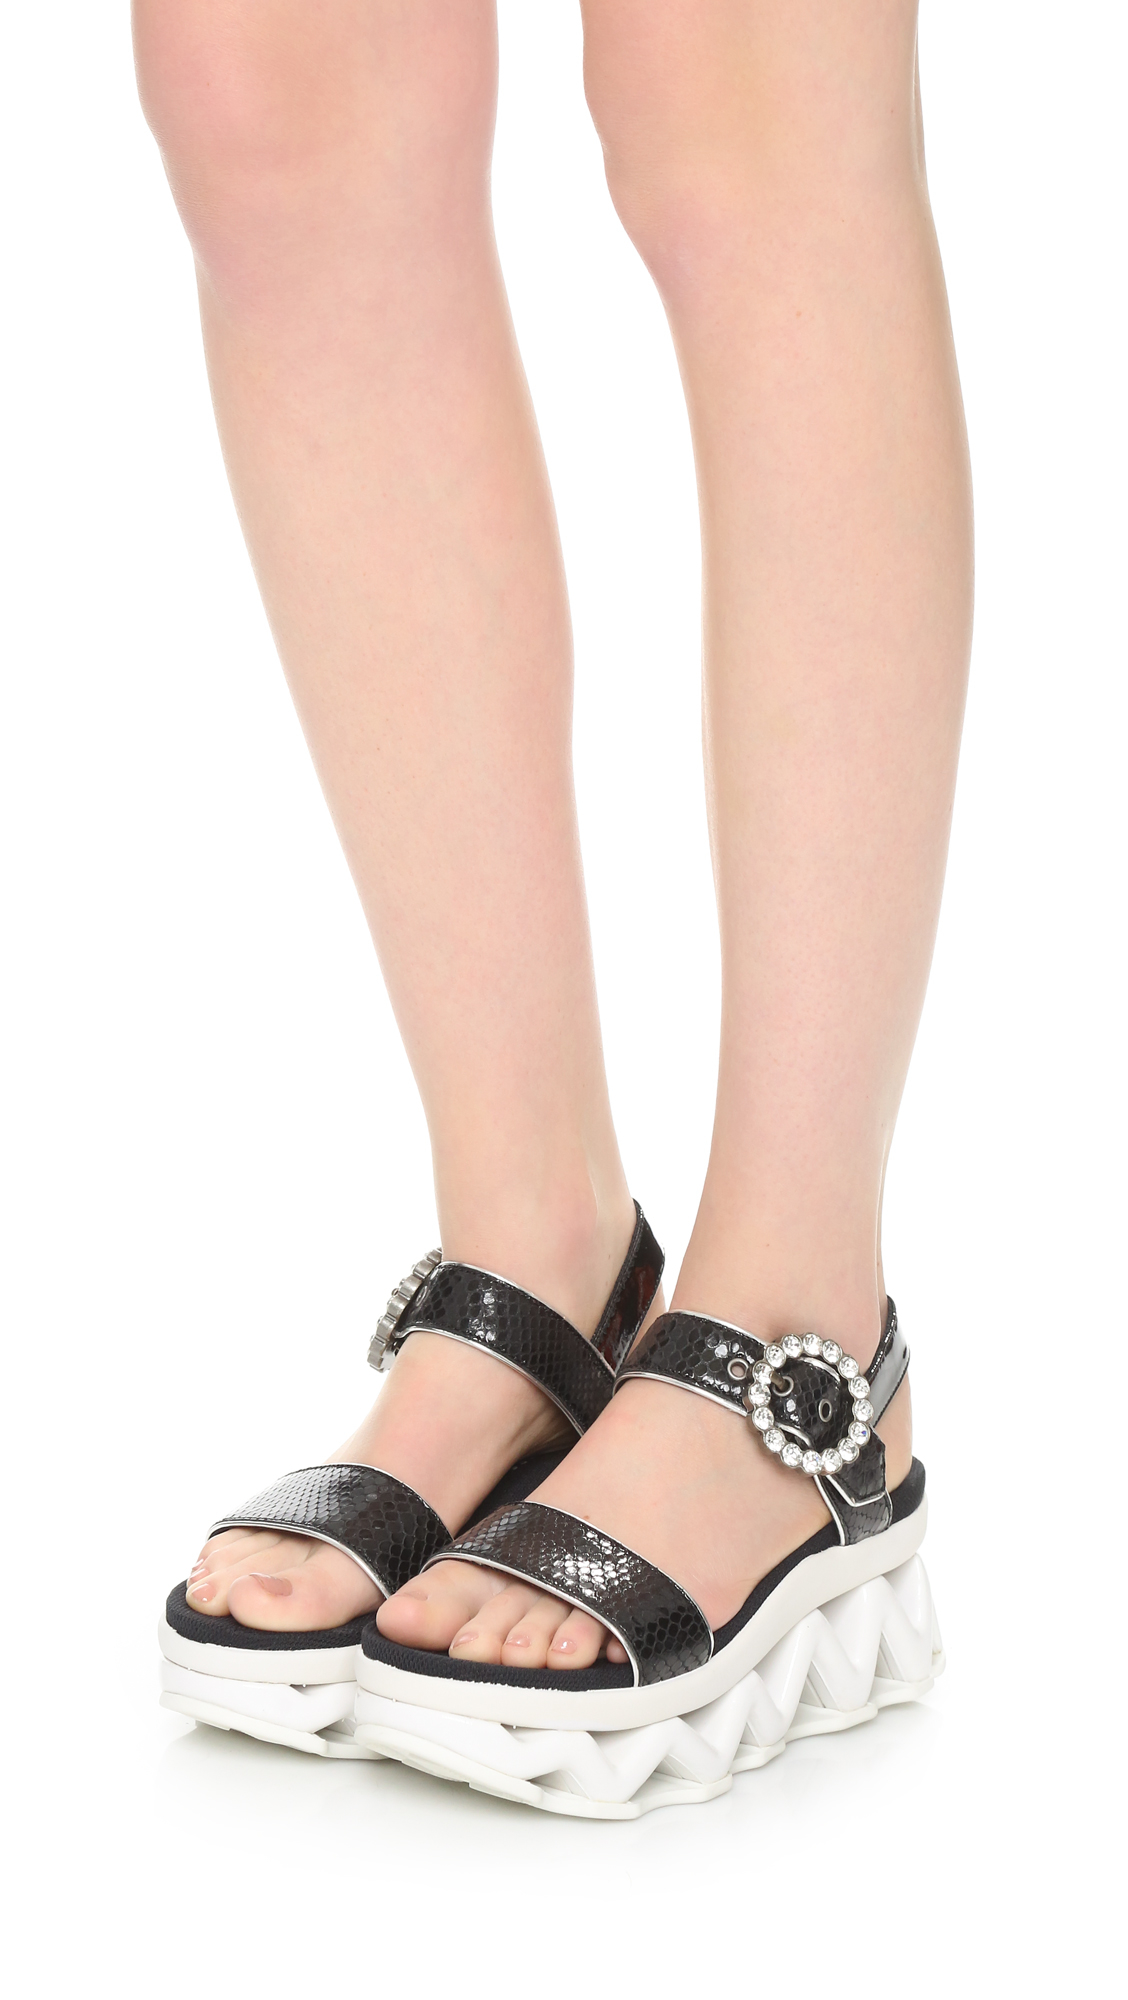 5358791c910 Lyst - Marc By Marc Jacobs Ninja Wave Sandals in Black